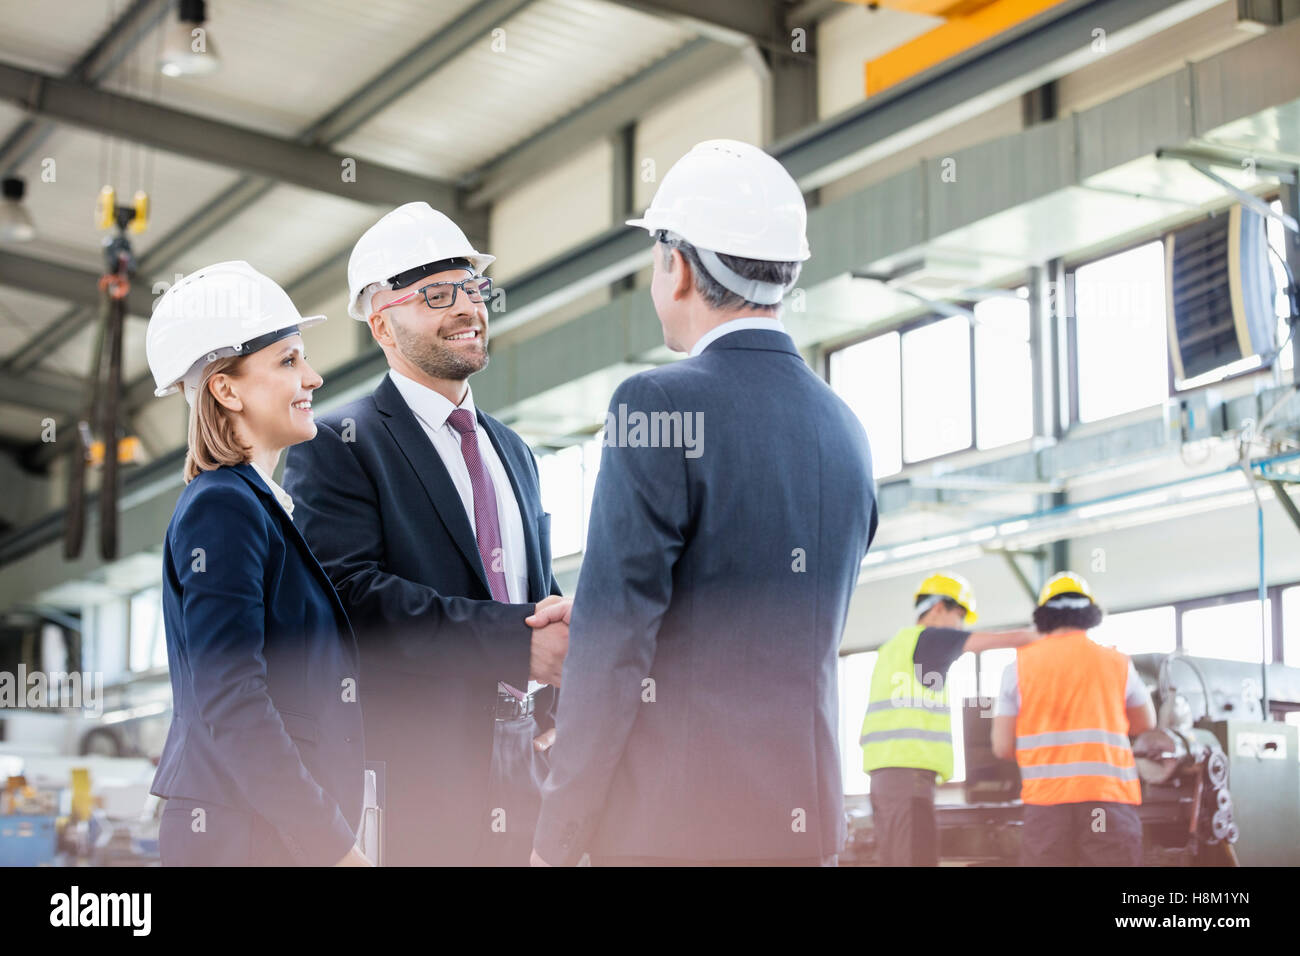 Businessmen shaking hands with workers working in background at metal industry Stock Photo